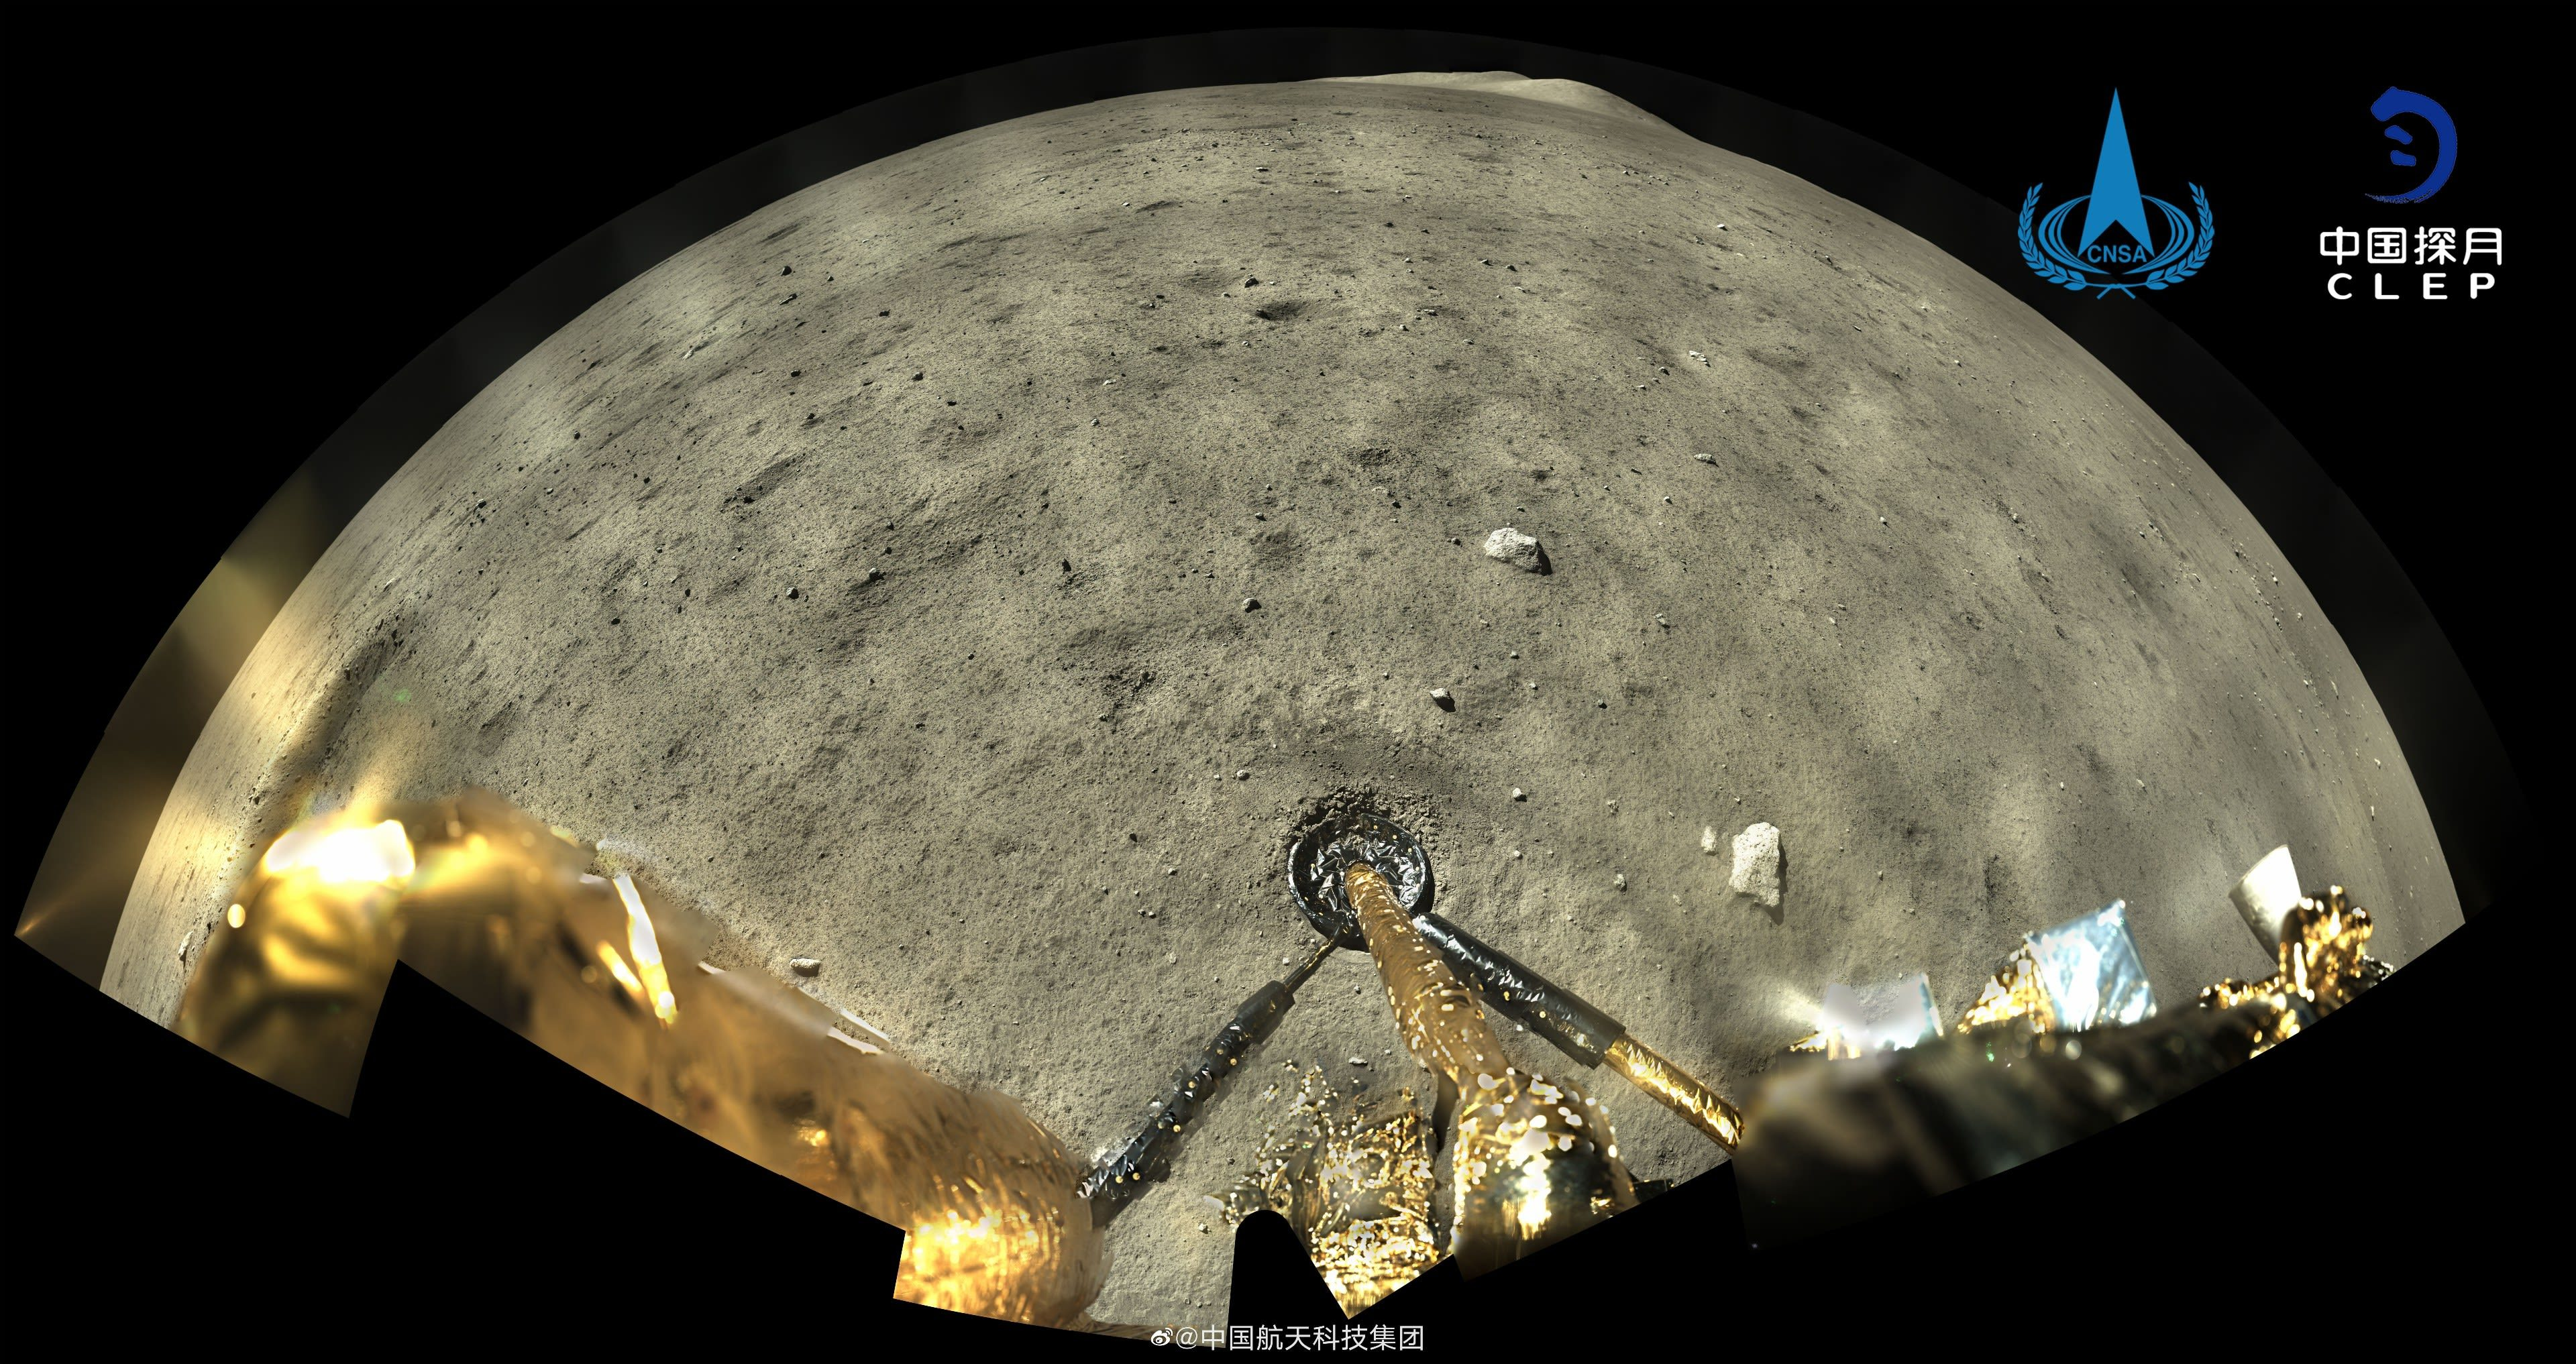 A view of the surface of the moon from the Chang'e 5 lander.